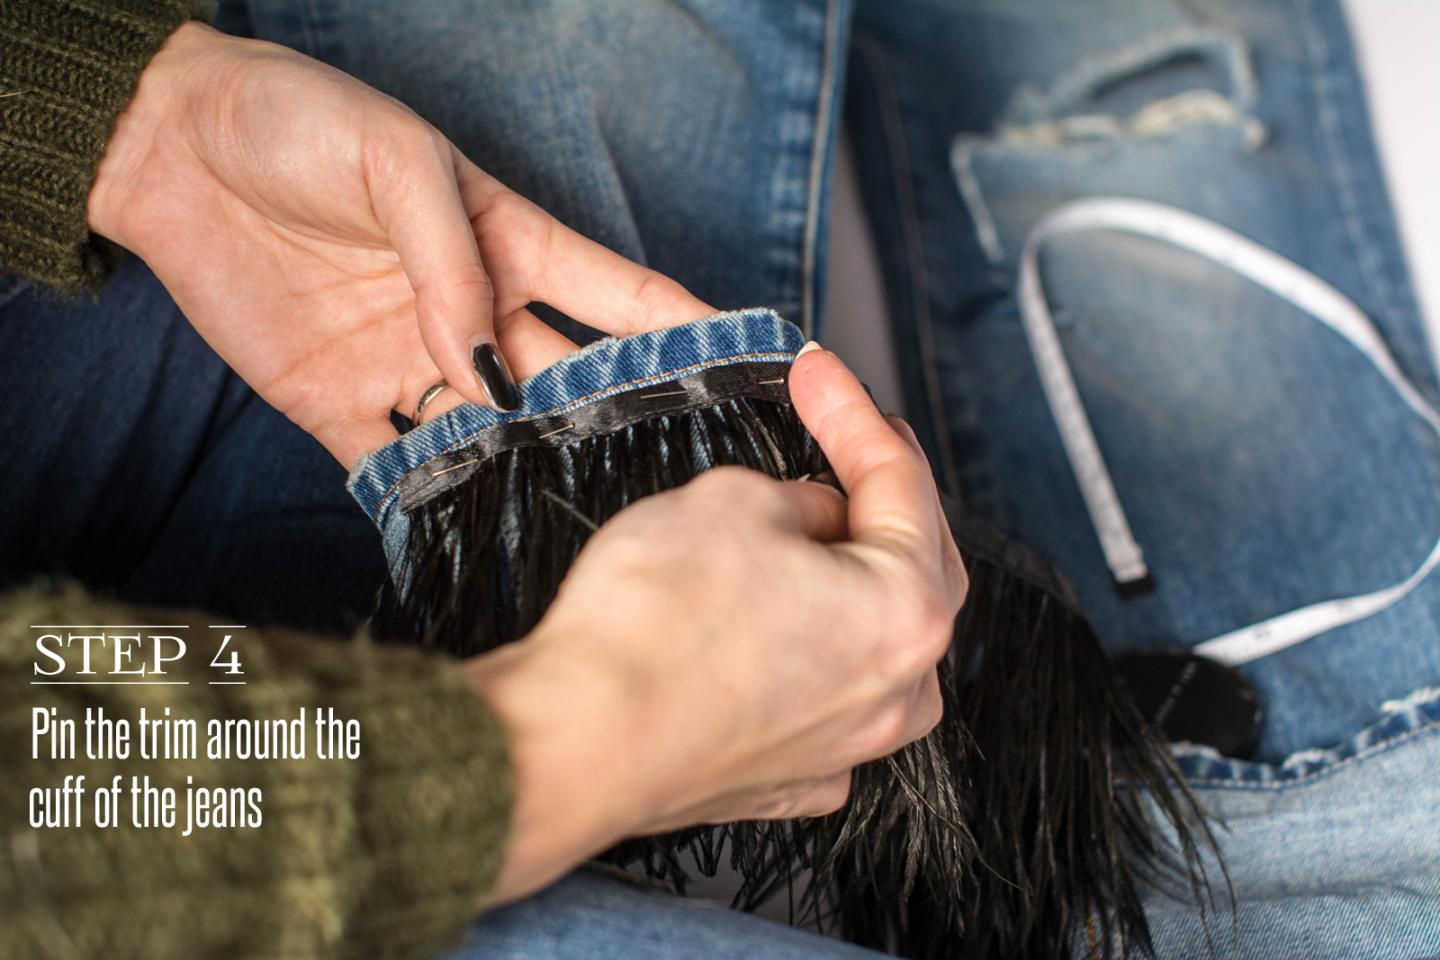 EJSTYLE - DIY Ostrich feather trim jeans, customise jeans, step 4